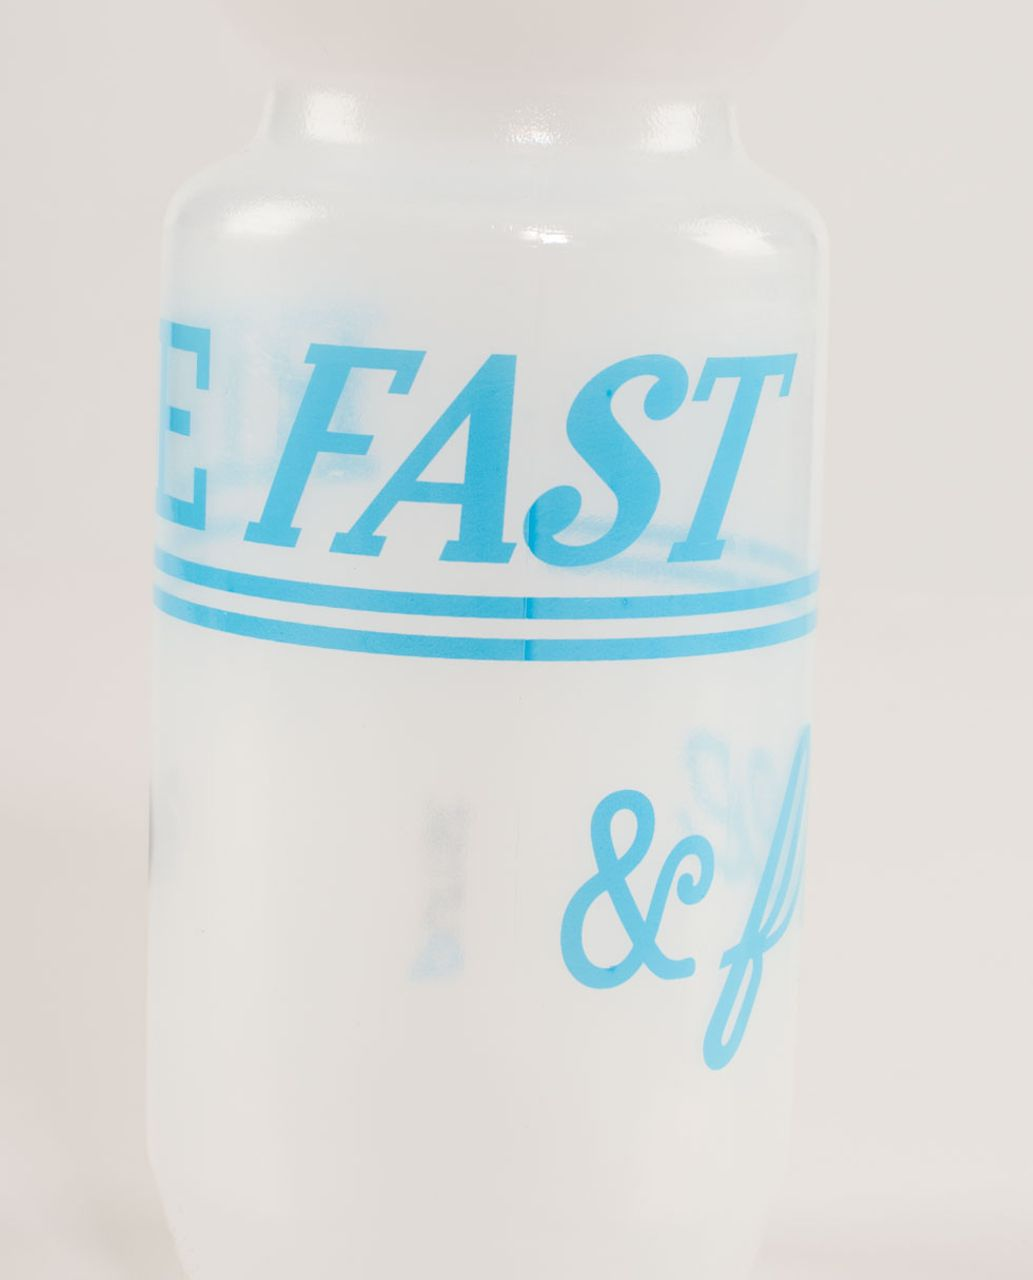 Lululemon Purist Cycling Water Bottle - Ride Fast